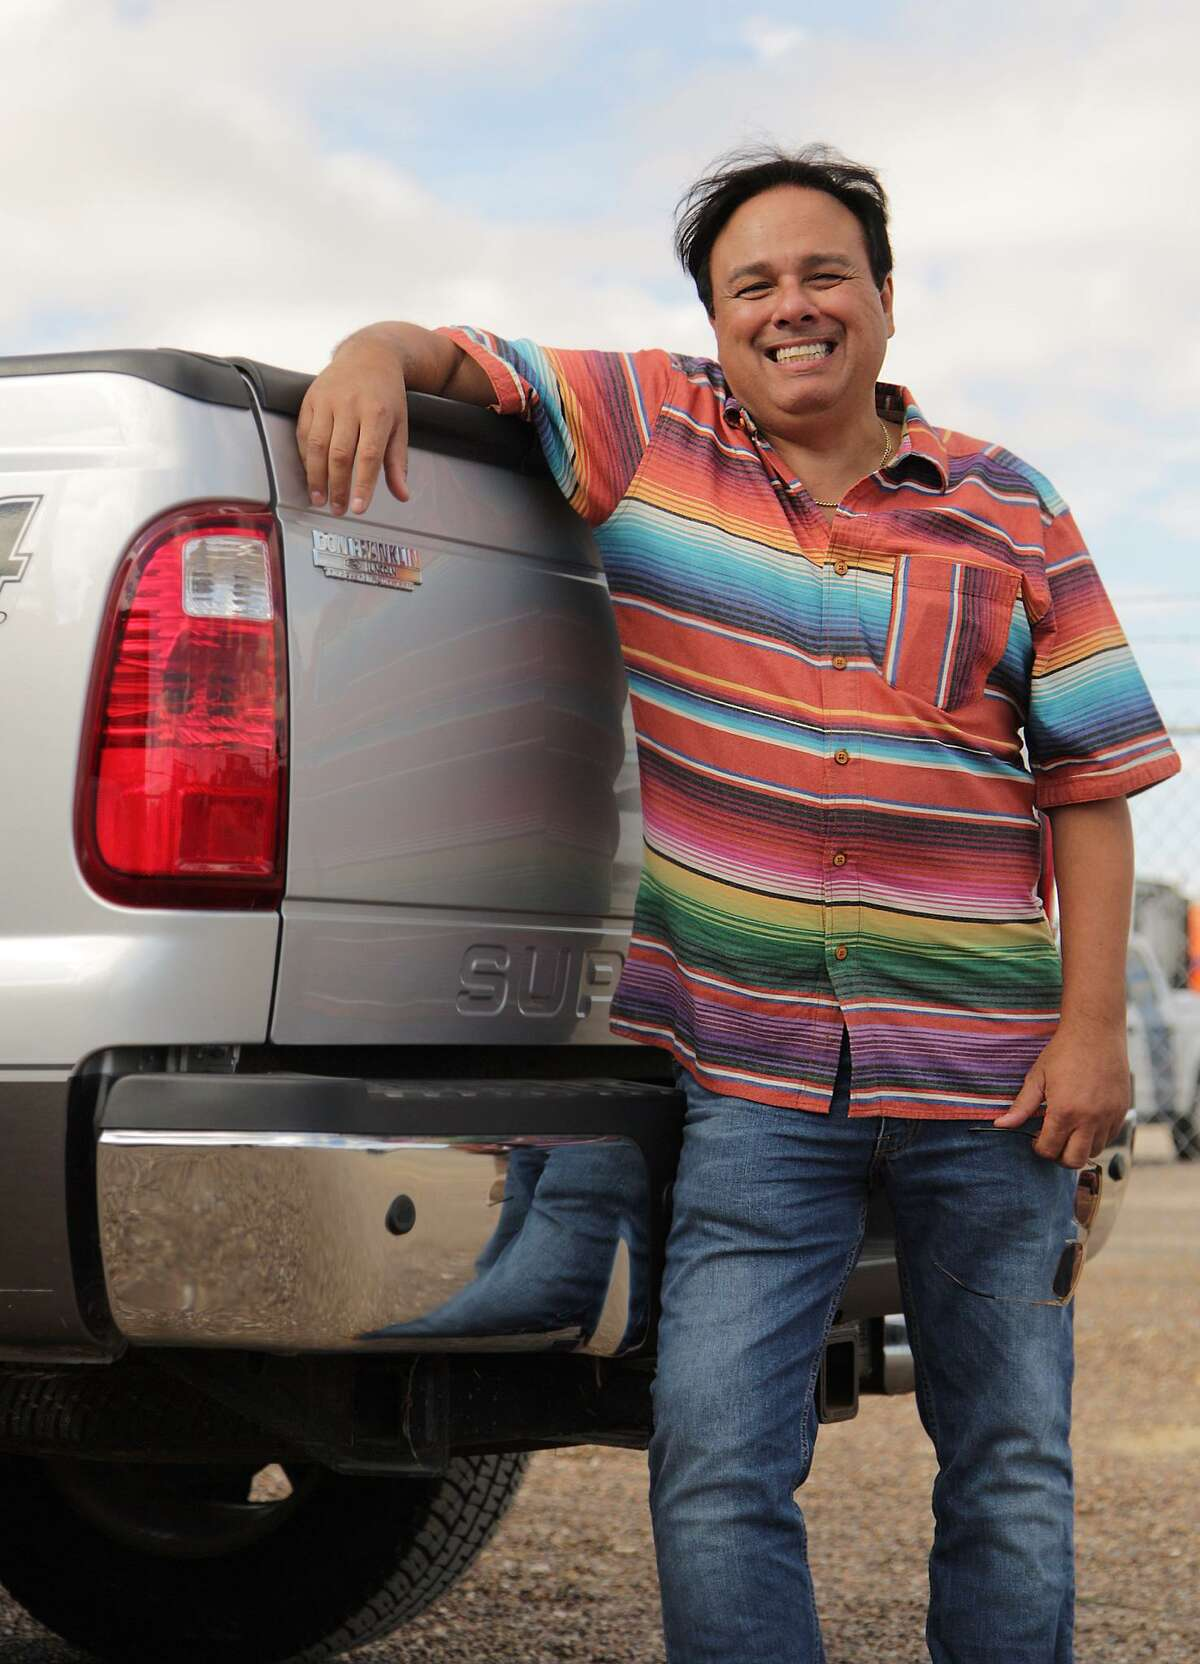 Two years ago, the feds seized Gerardo Serrano's pickup truck at the bridge in Eagle Pass. After two years and a lawsuit, the truck was released this month with little explanation. Serrano has filed a class action lawsuit asking a judge to order the federal government to promptly hold hearings for seized vehicles.